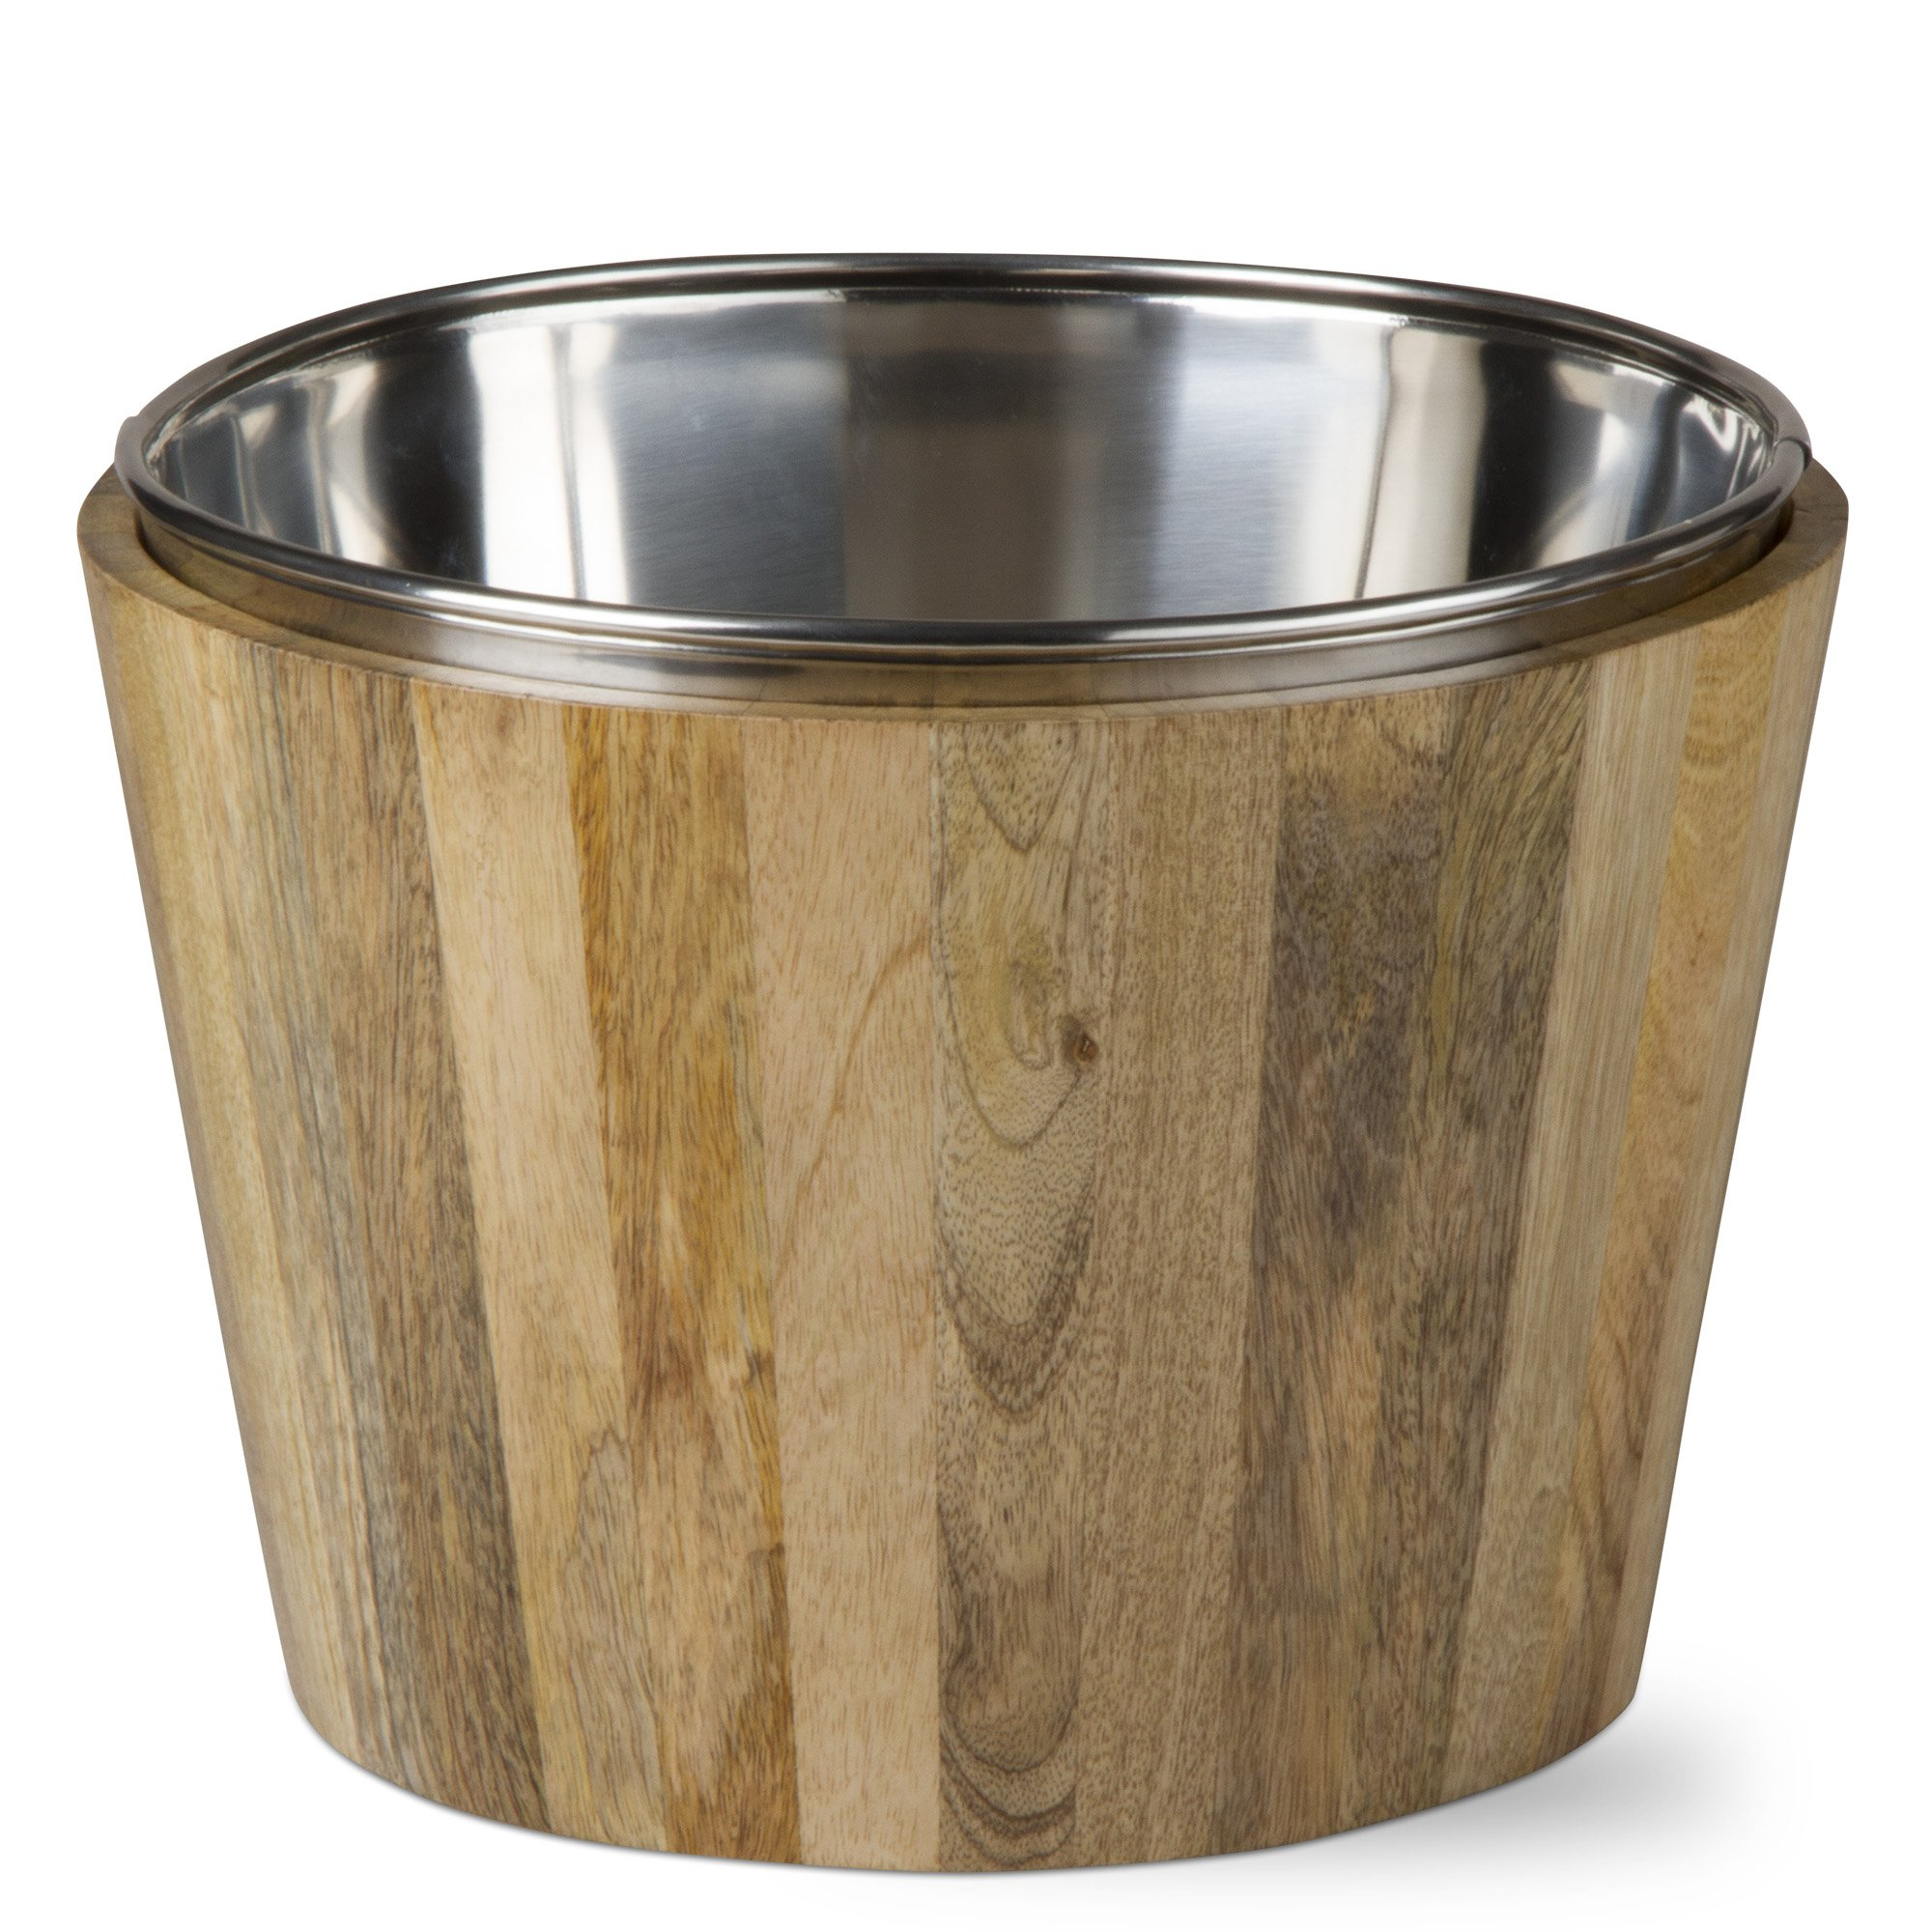 tag - Malaya Wine Bucket, Natural Mango Wood Barware Ideal for Parties and Events, Natural (9.25'' x 13'' Dia.)